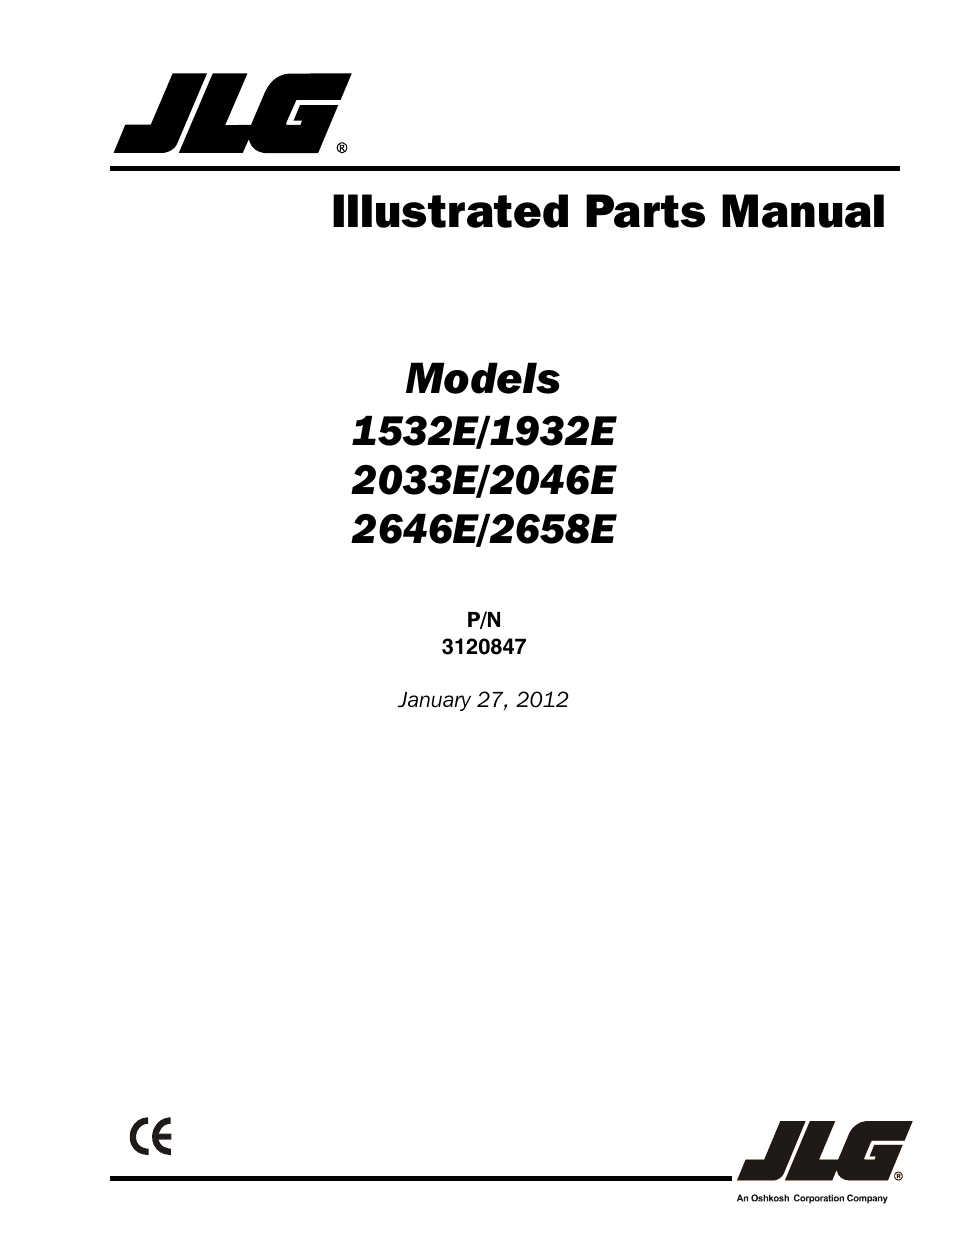 hight resolution of jlg 2658e parts manual user manual 244 pages also for 2646e parts manual